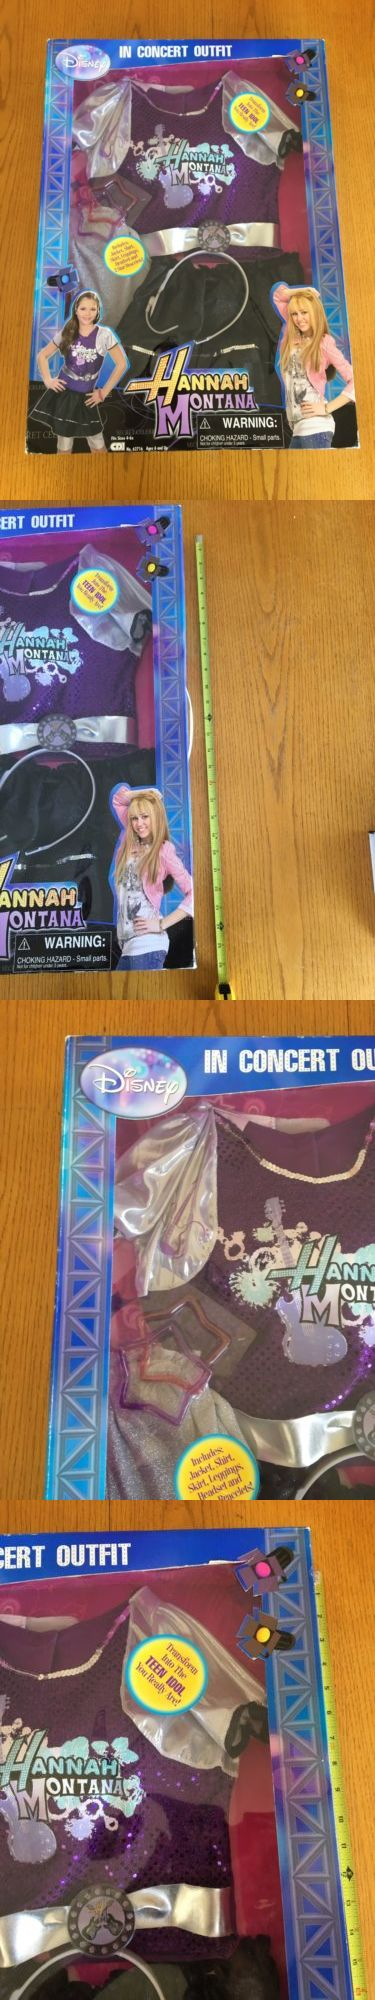 Hannah Montana 158763: Rare Hannah Montana In Concert Outfit - Fits Sizes 4-6X - New In Box -> BUY IT NOW ONLY: $39.59 on eBay!